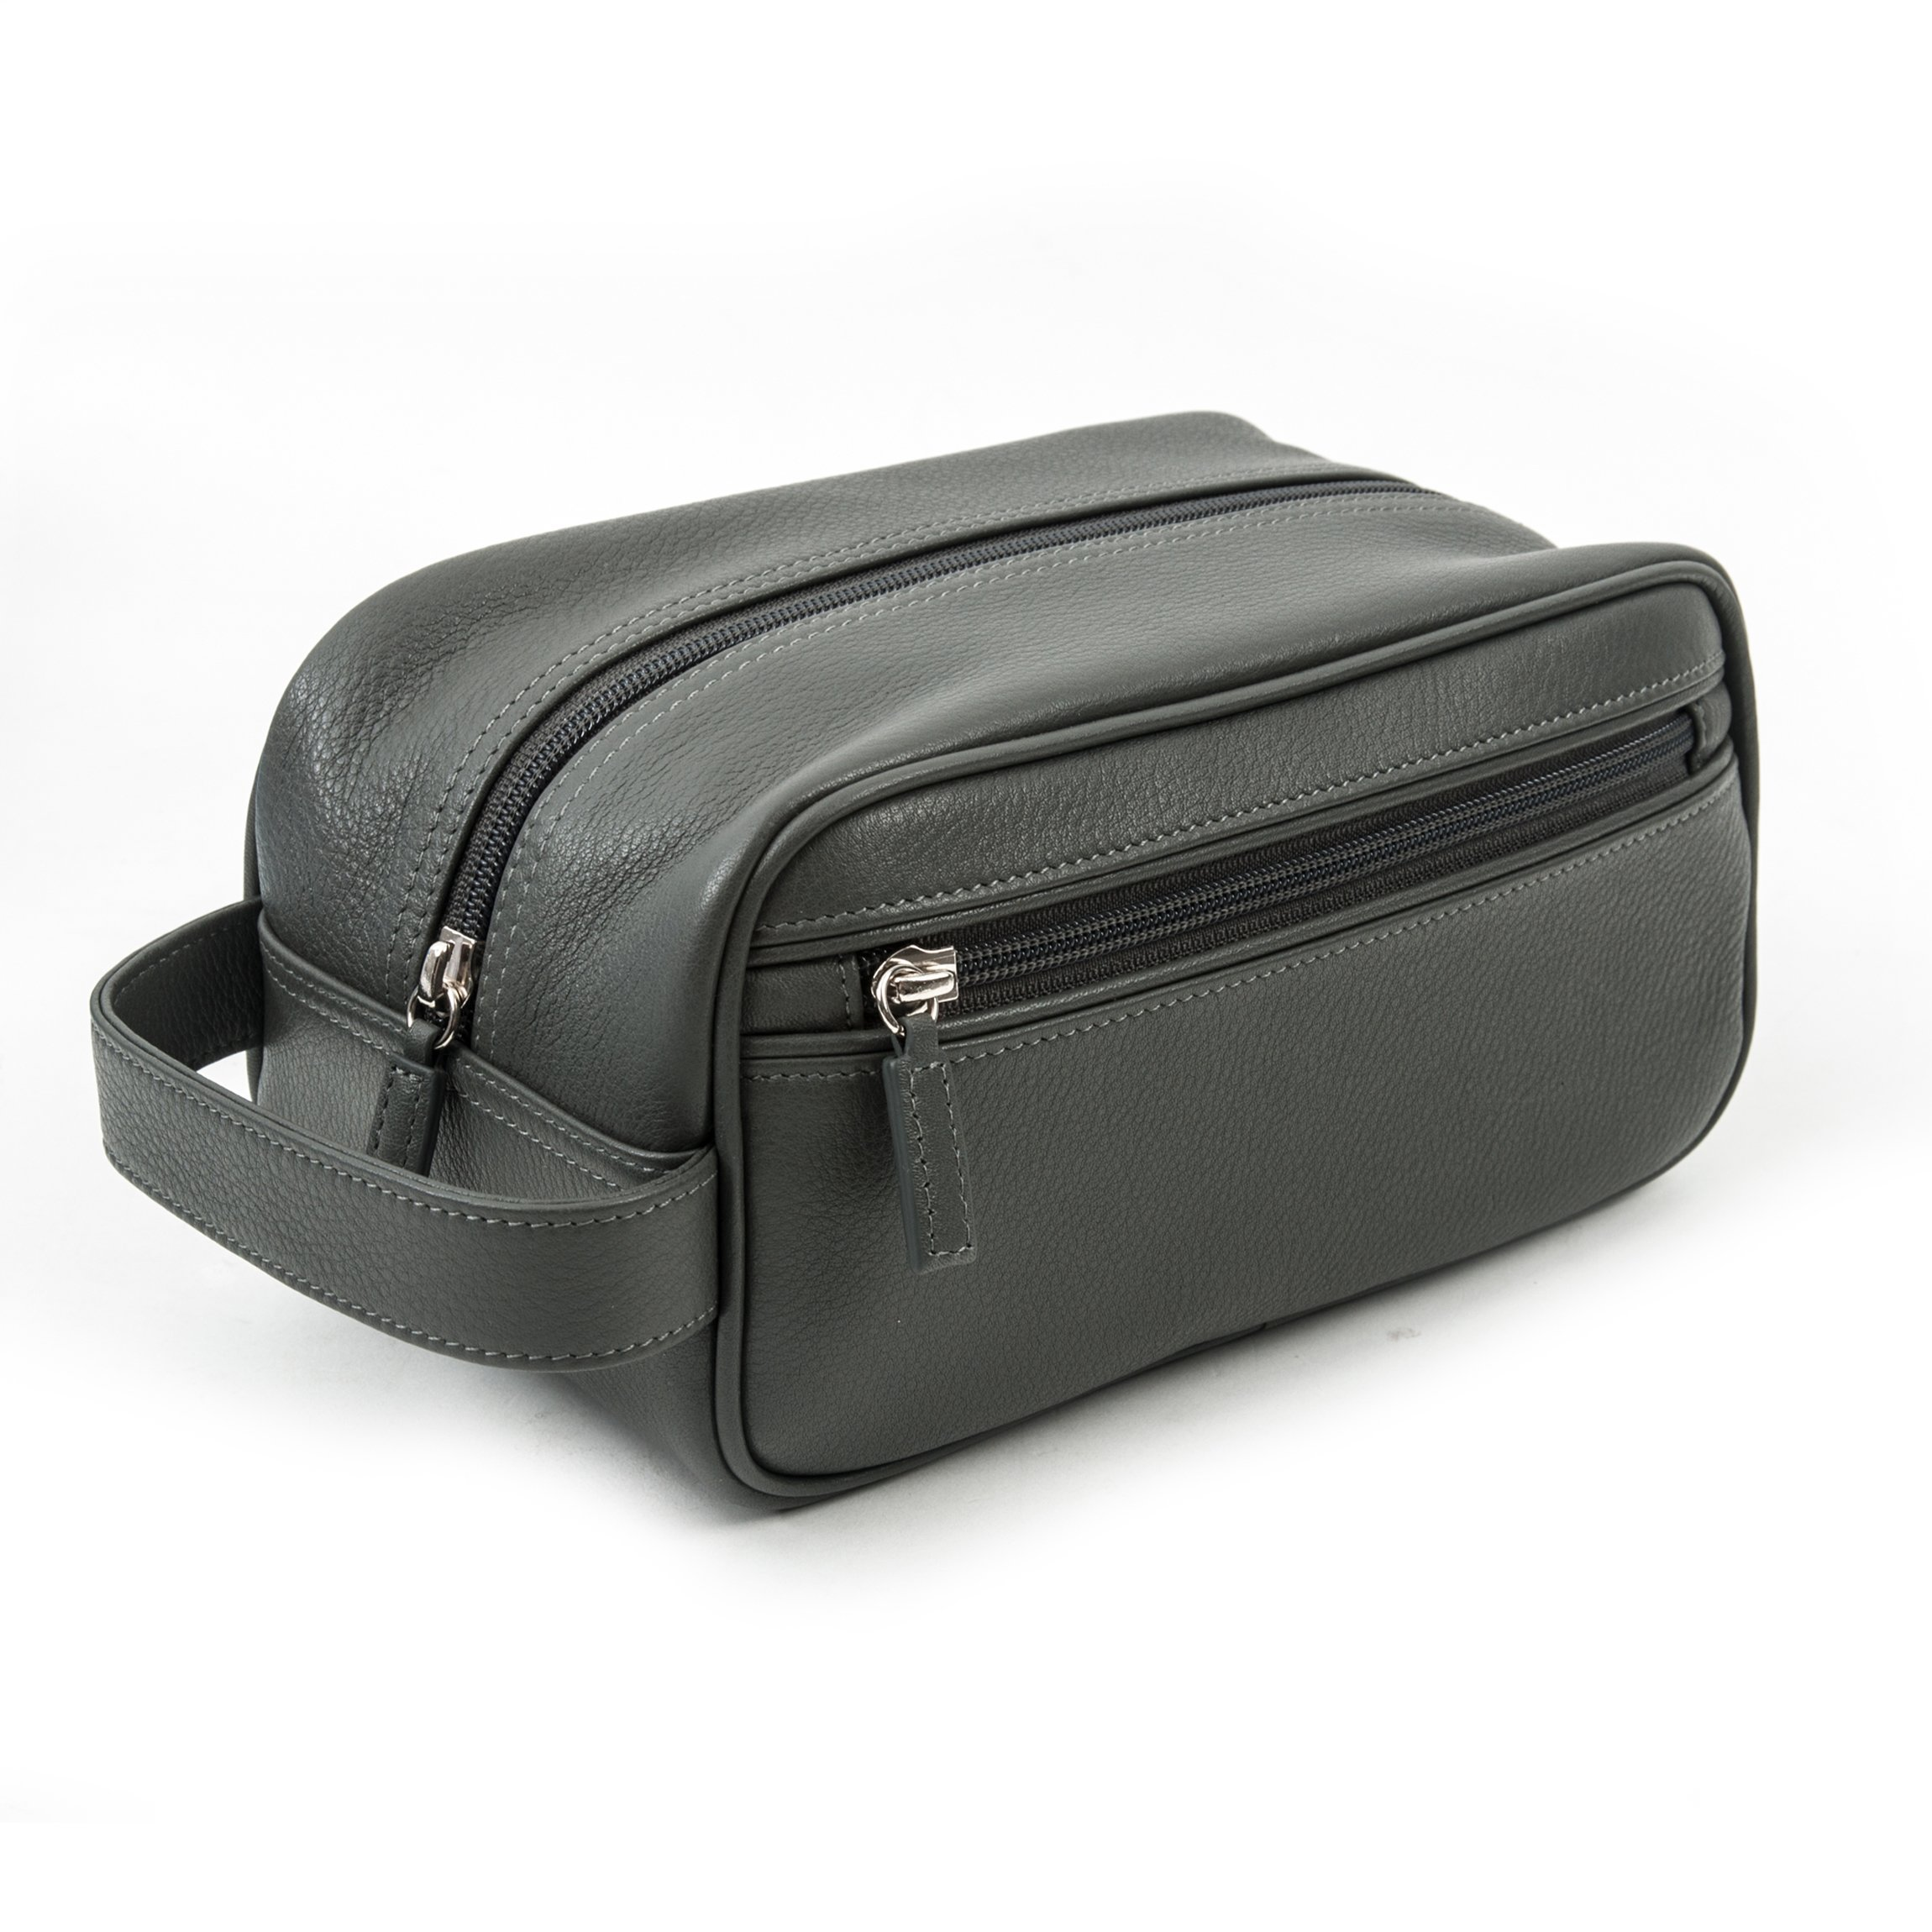 Leatherology Small Shave Toiletry Bag - Full Grain Leather Leather - Charcoal (gray)